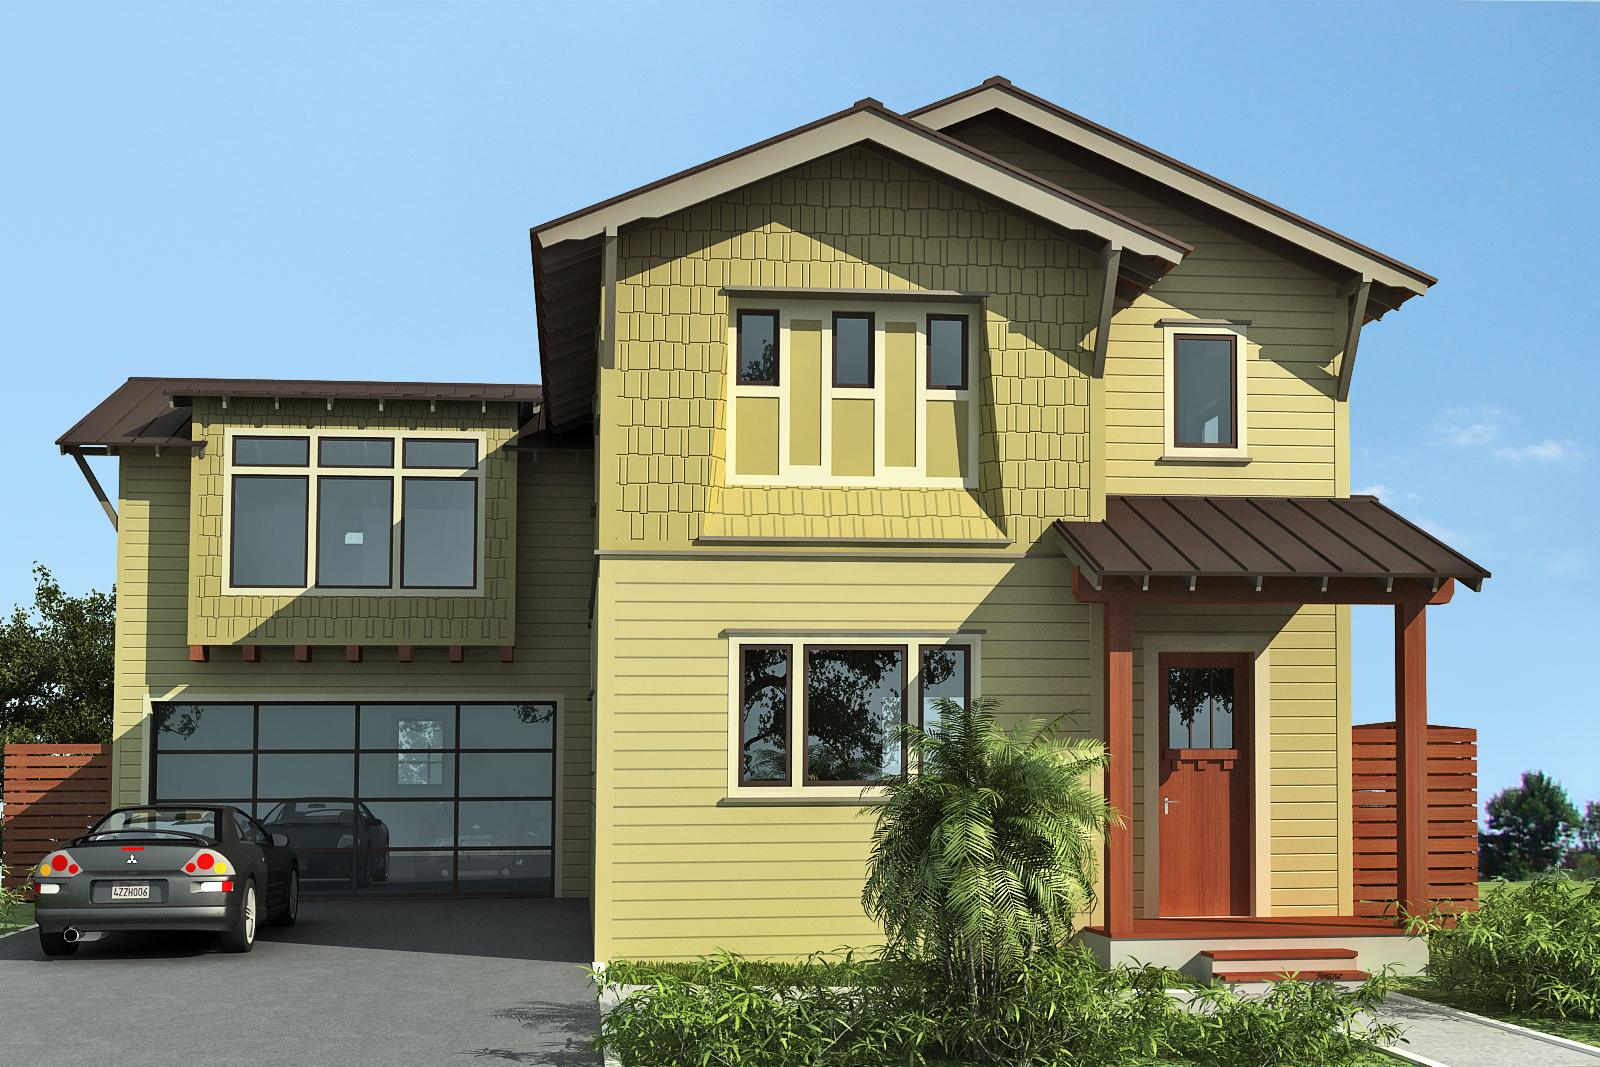 Modern bungalow green button homes - Painting exterior render model ...